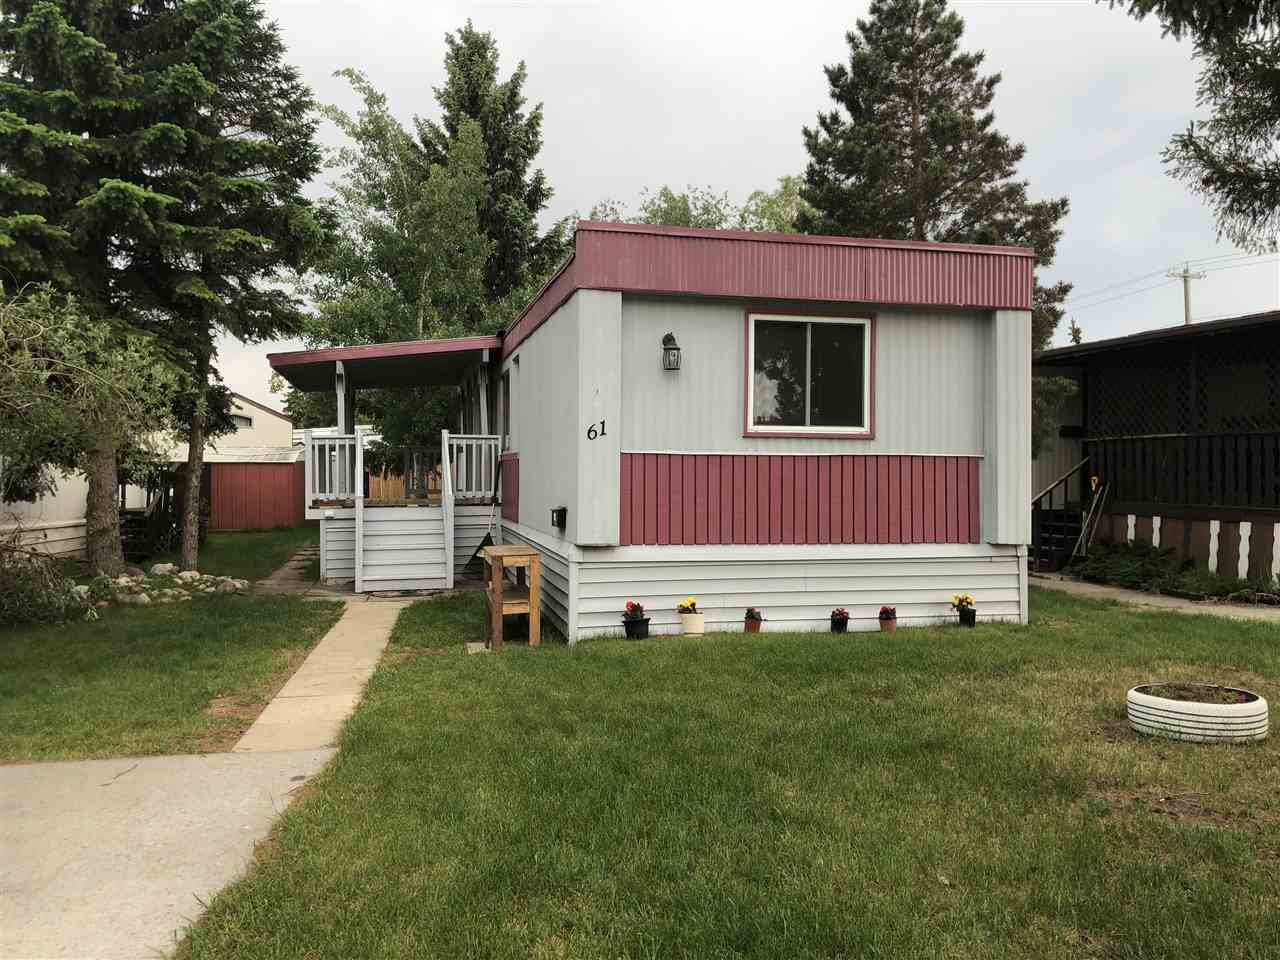 MLS® listing #E4161858 for sale located at 61 12604 153 Ave